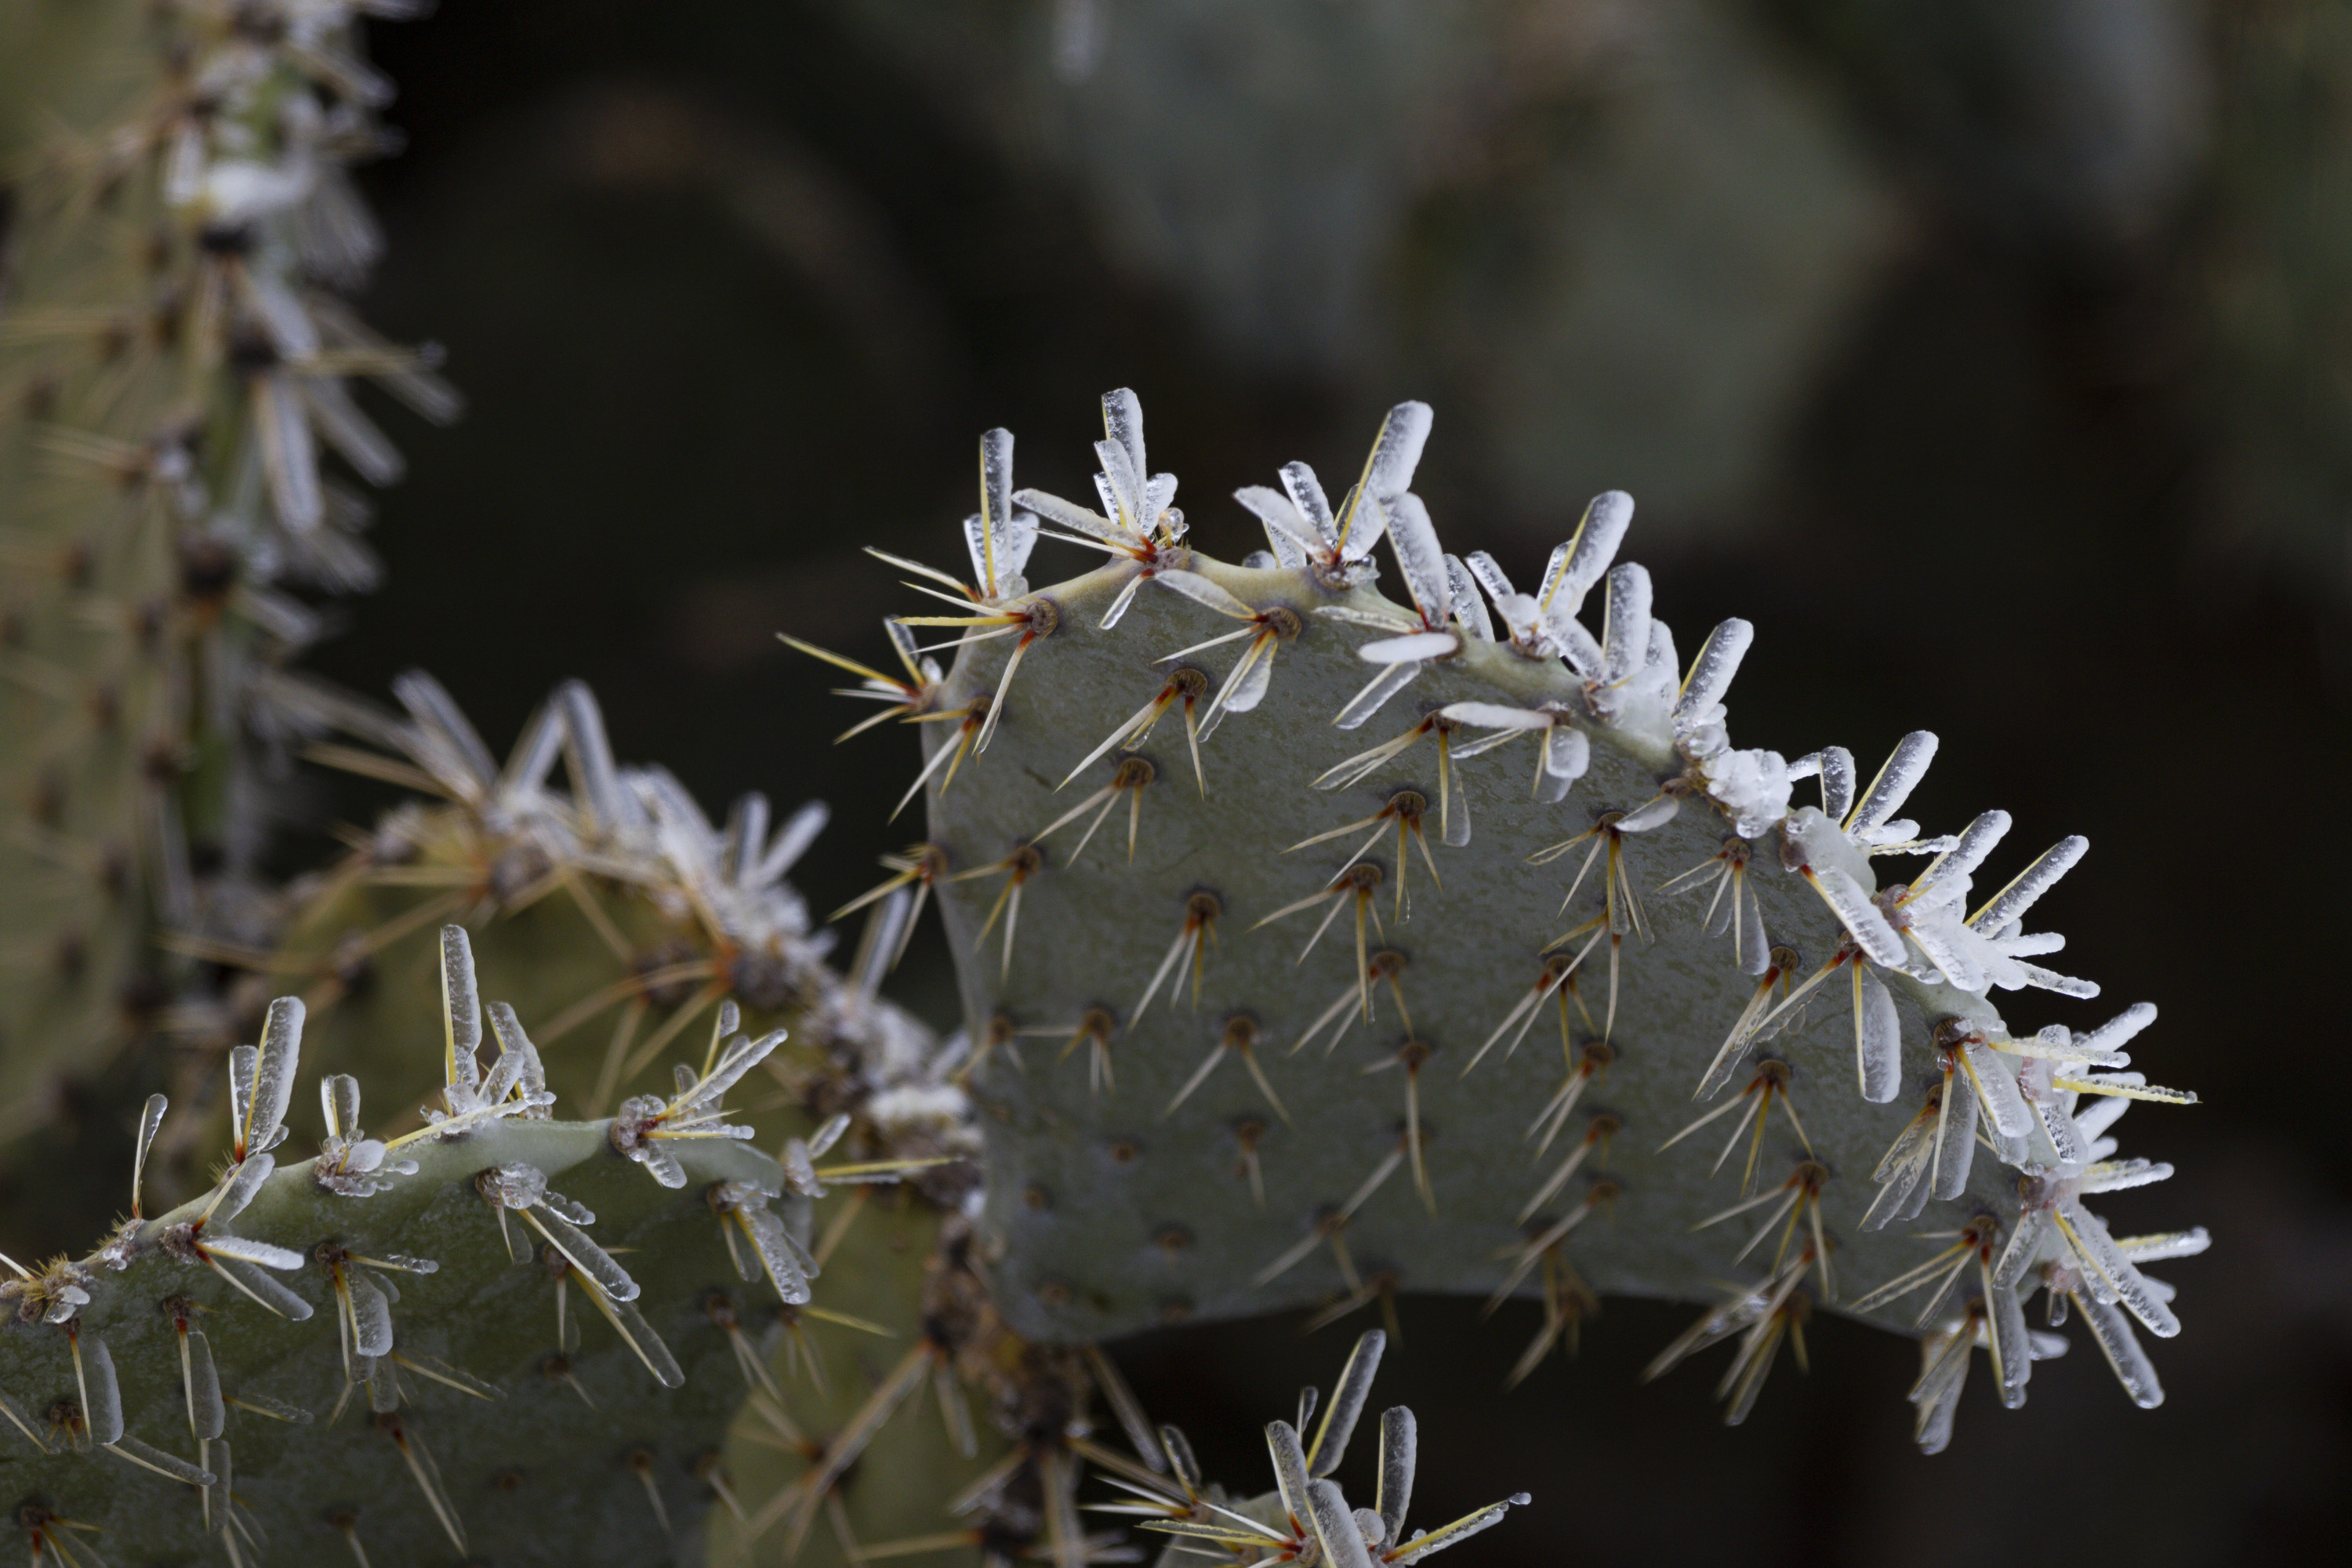 A cactus with its spines covered in ice